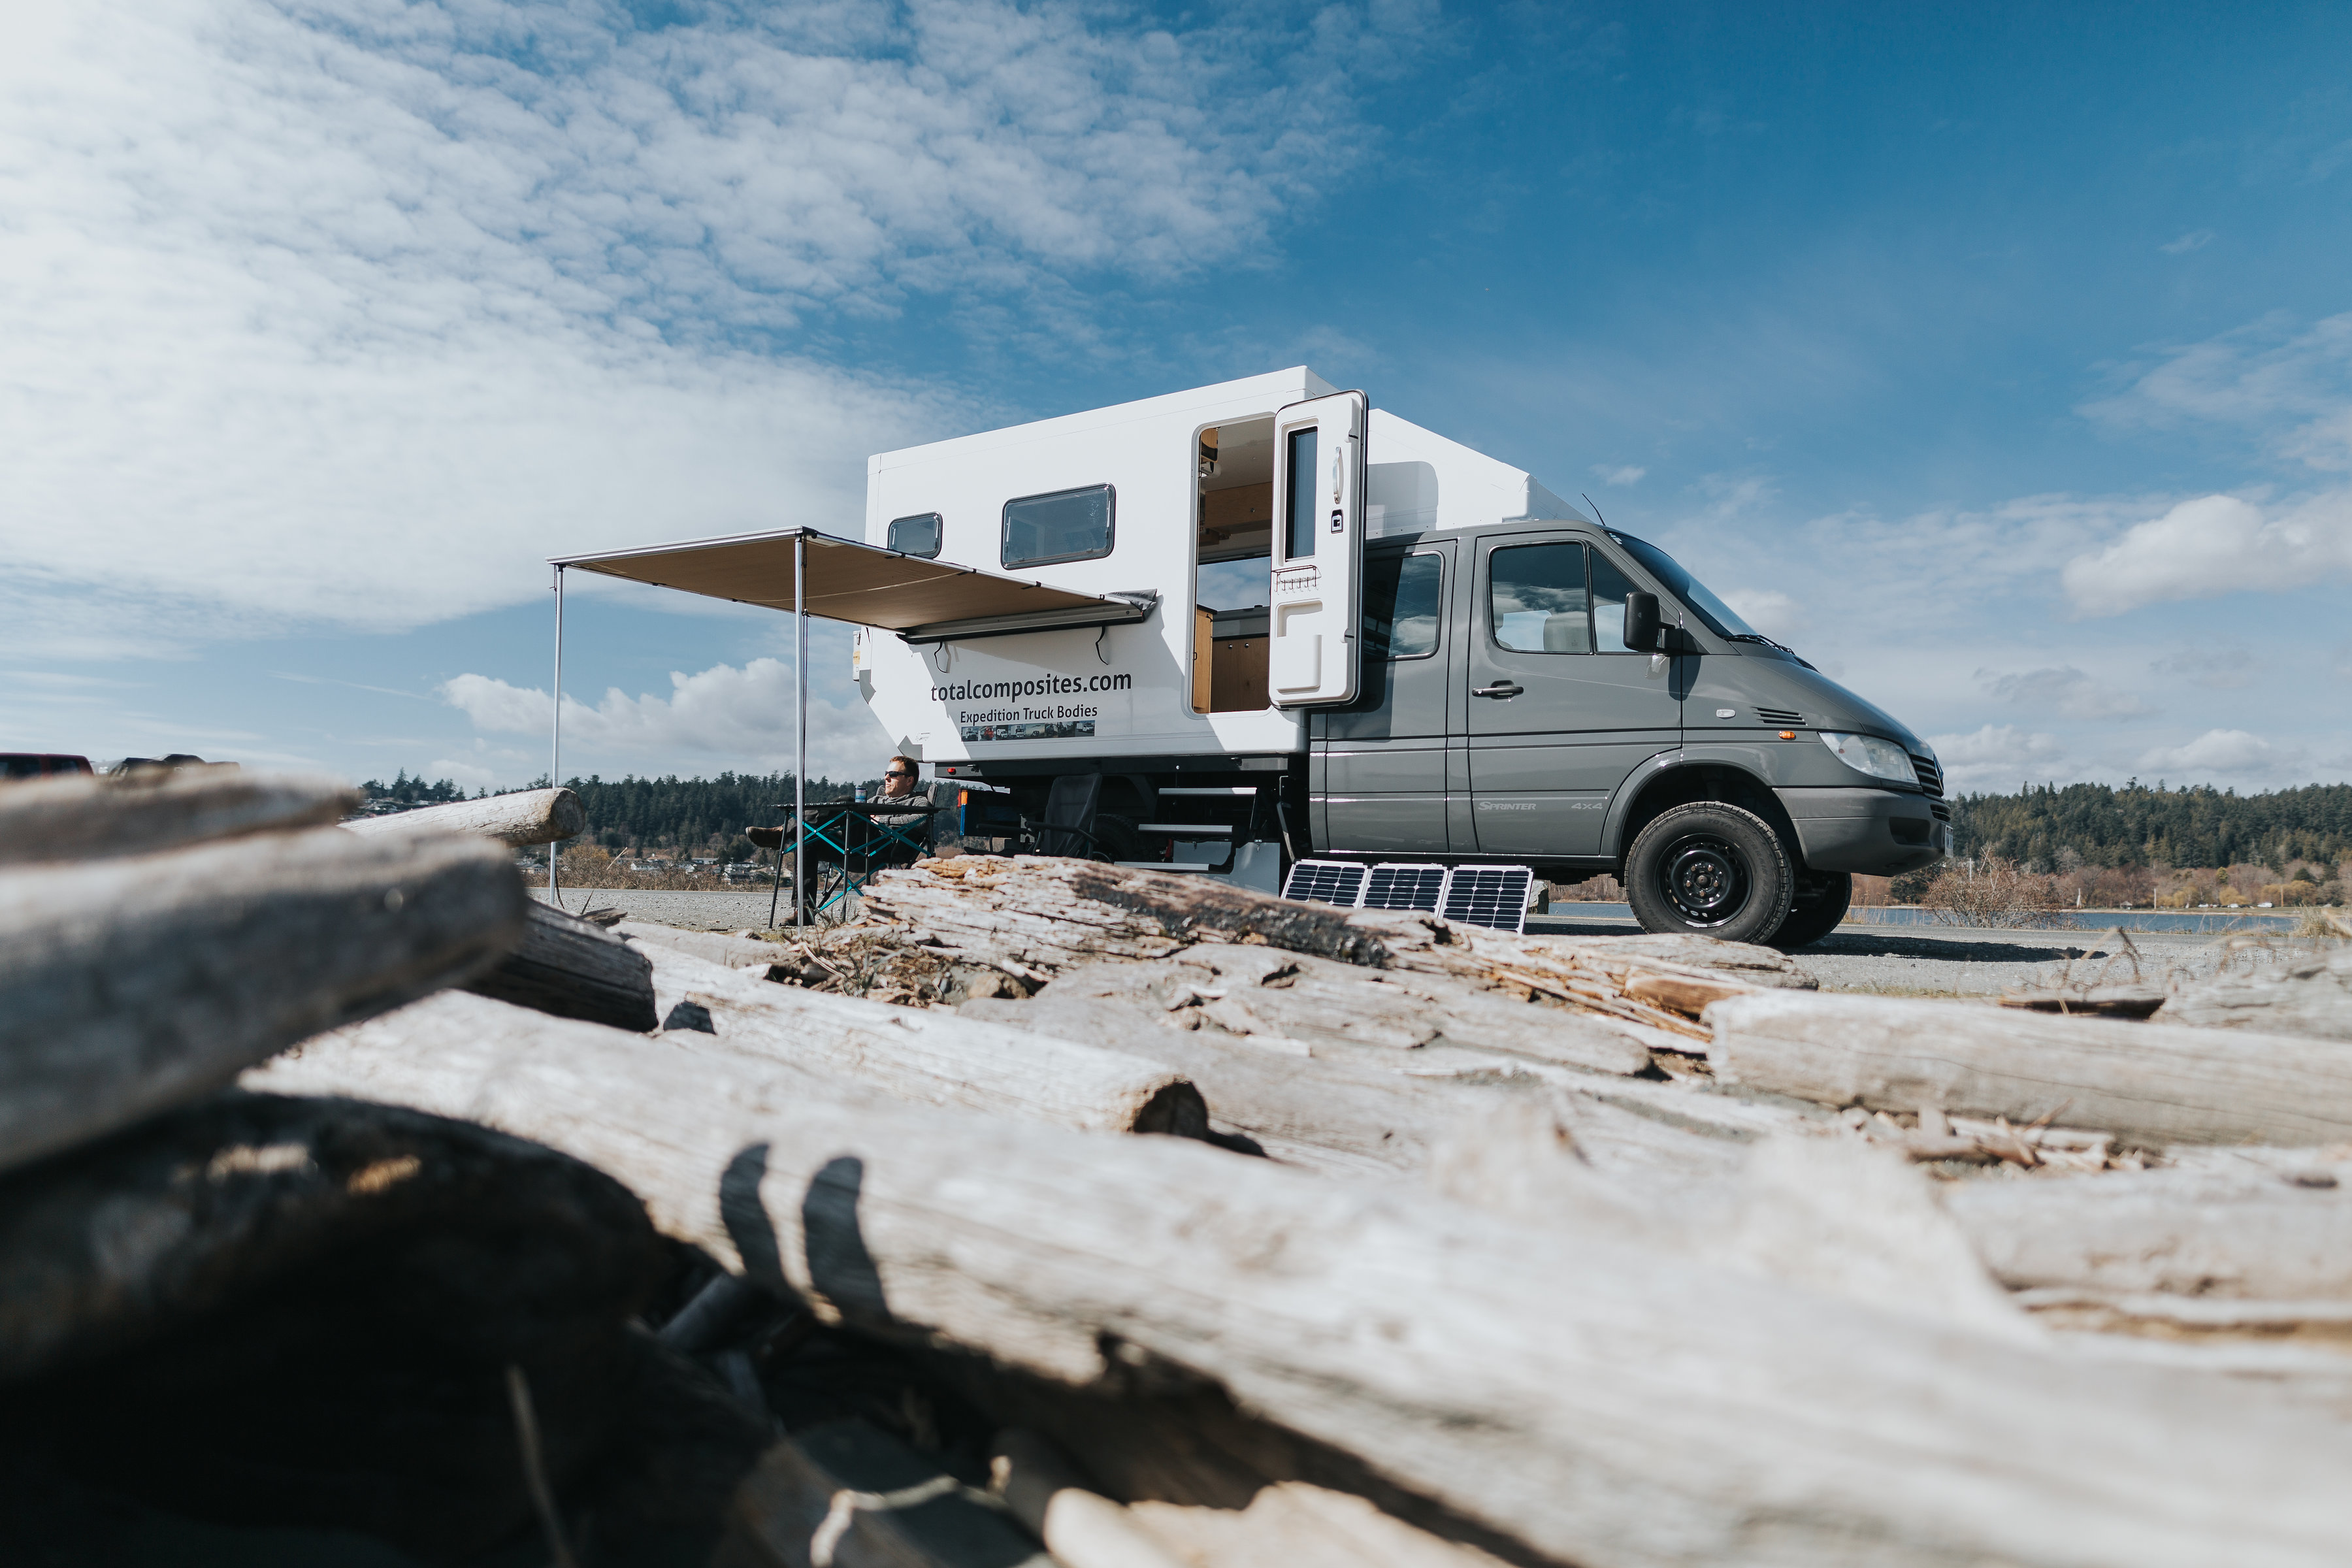 DIY Expedition Camper Kits In The USA